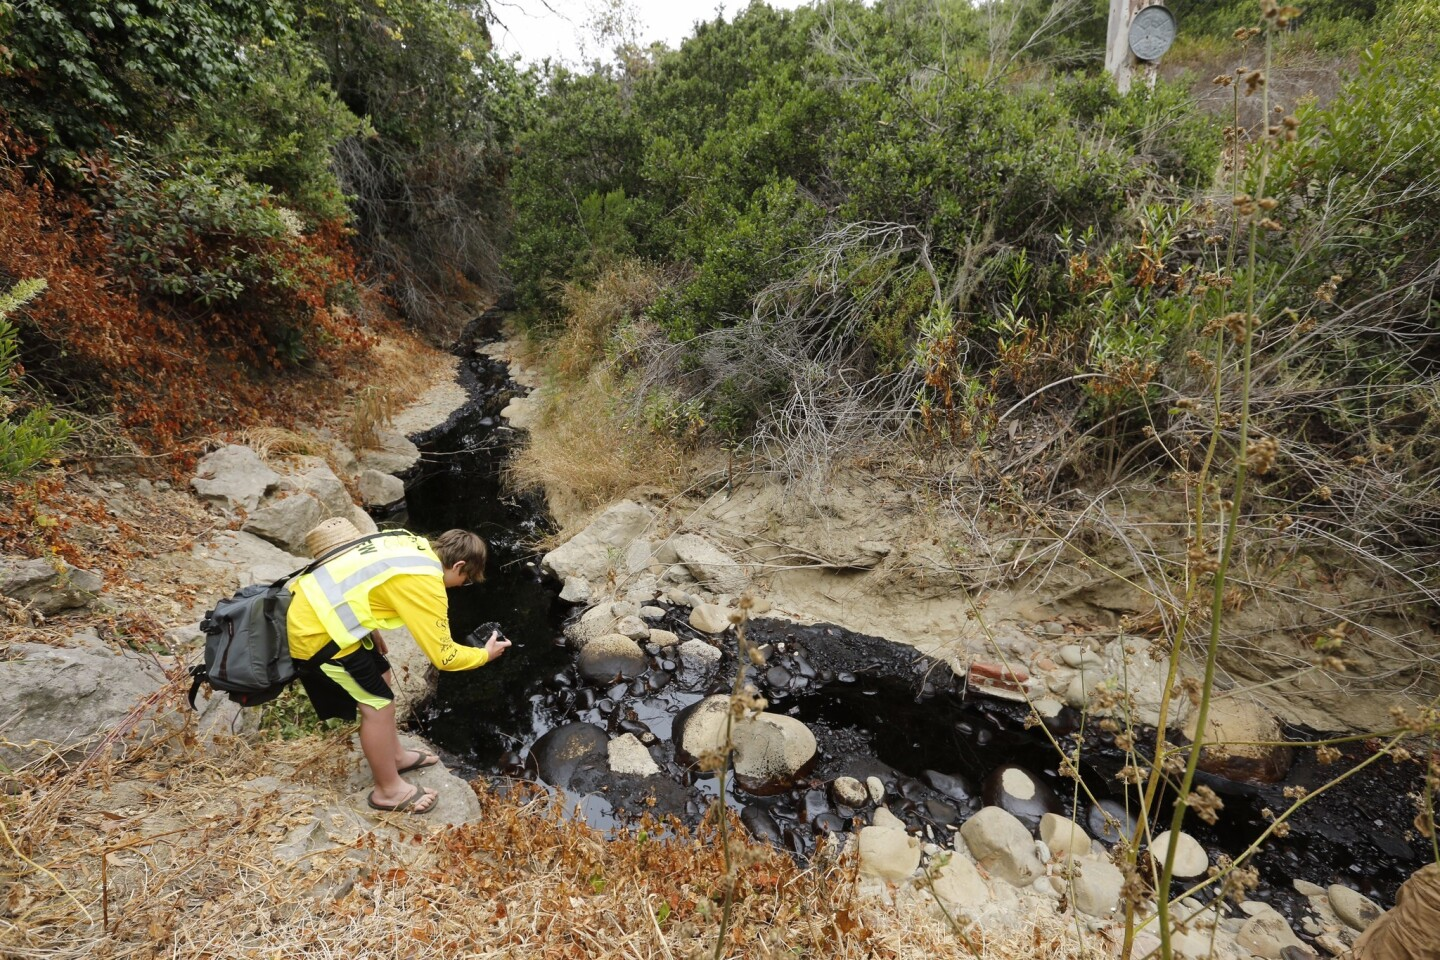 Gabriel Anderson, 13, photographs a section of the oil spill in Ventura. He was with his father, Sean Anderson, a professor at Cal State Channel Islands, who was collecting samples to test for toxicity.